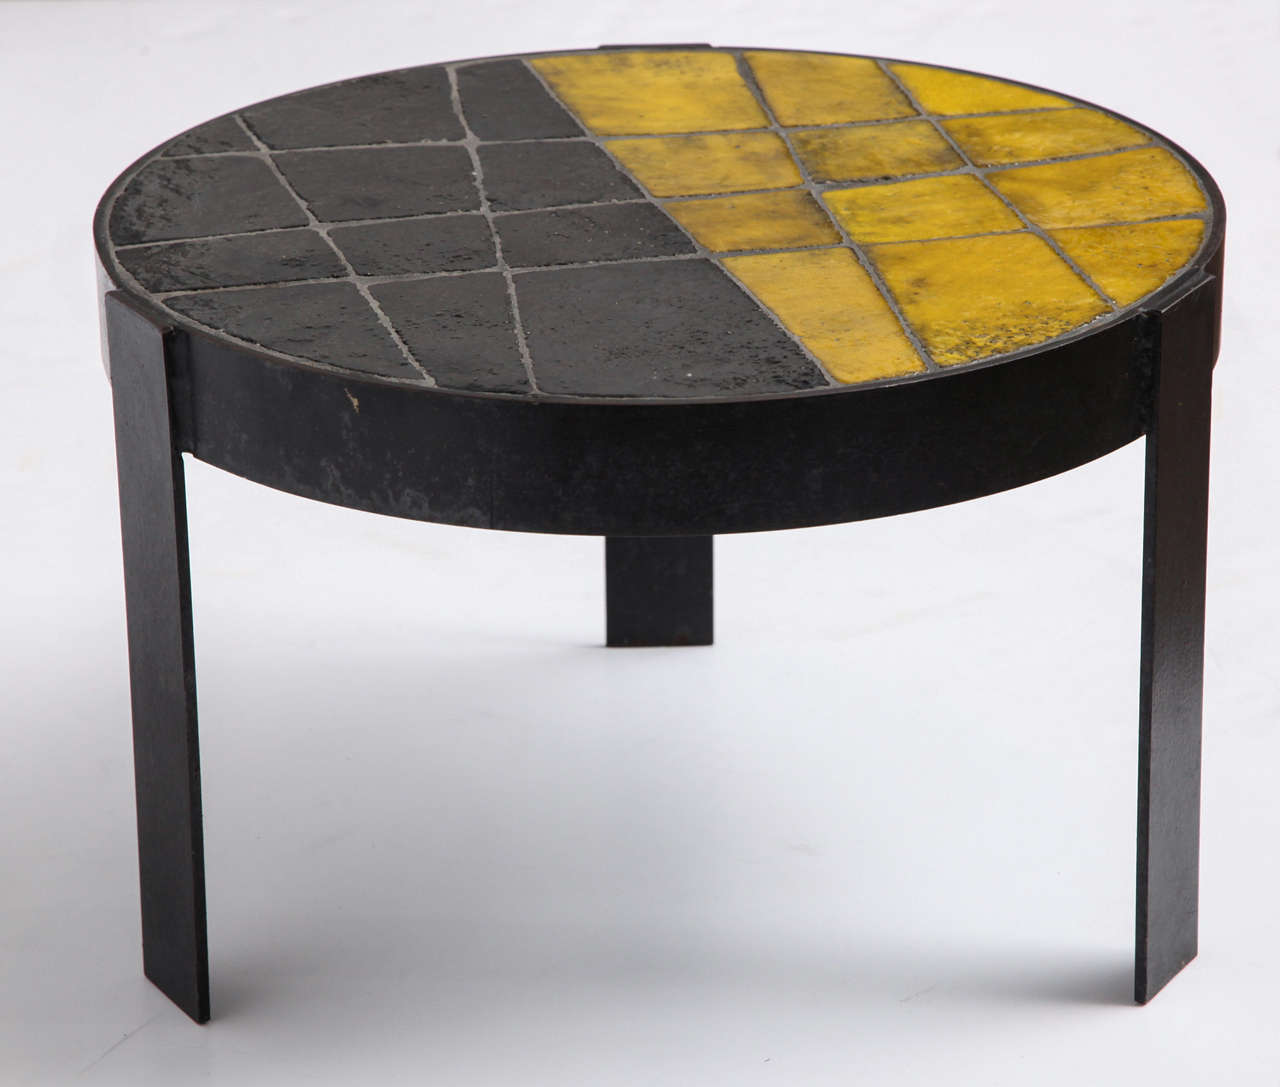 Glazed ceramic tile top table with patinated steel base